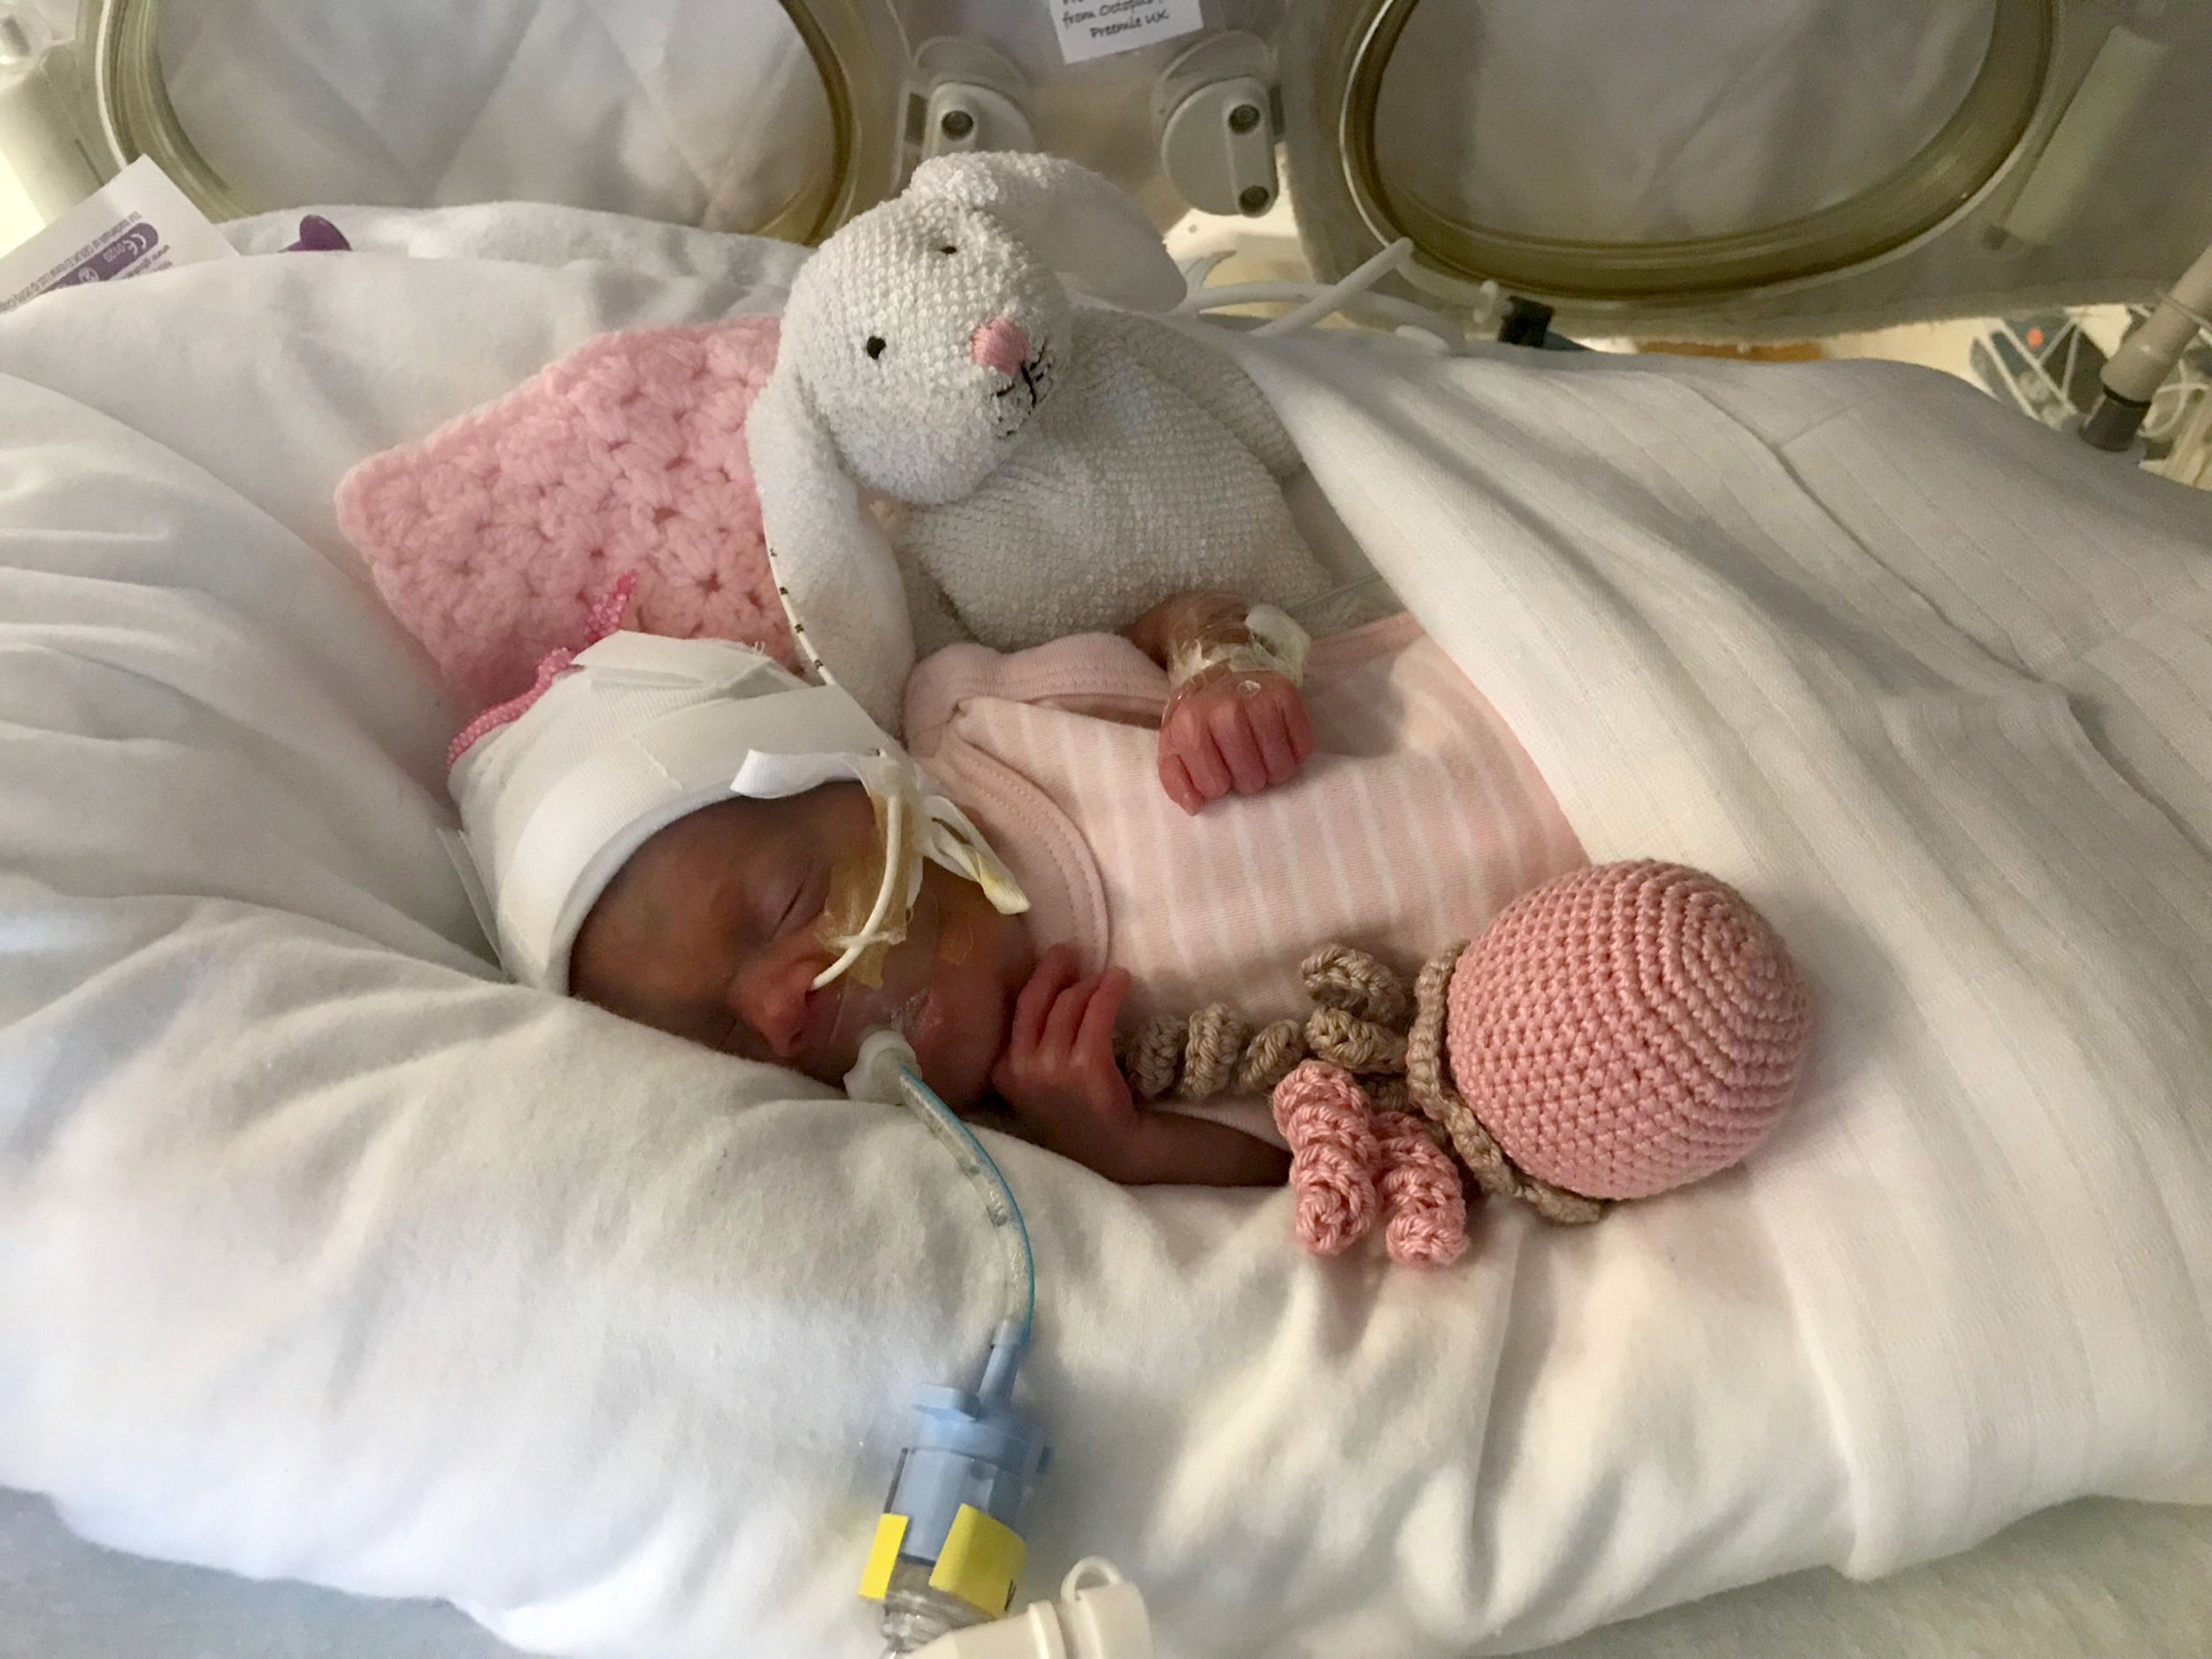 PIC FROM Caters News - (PICTURED: Amelia Osbourne, from Tamworth, Staffs, in hospital) -A miracle premature baby born so small she fitted inside her fathers palms and was tinier than her toy rabbit has celebrated her first birthday.Amelia Osbourne, now one, was born on February 27 last year at just 26 weeks gestation and weighing a tiny 1lbs99oz less than a bag of sugar after mum Louise Edkins went into hospital for a routine check-up when she couldnt feel the her moving.SEE CATERS COPY